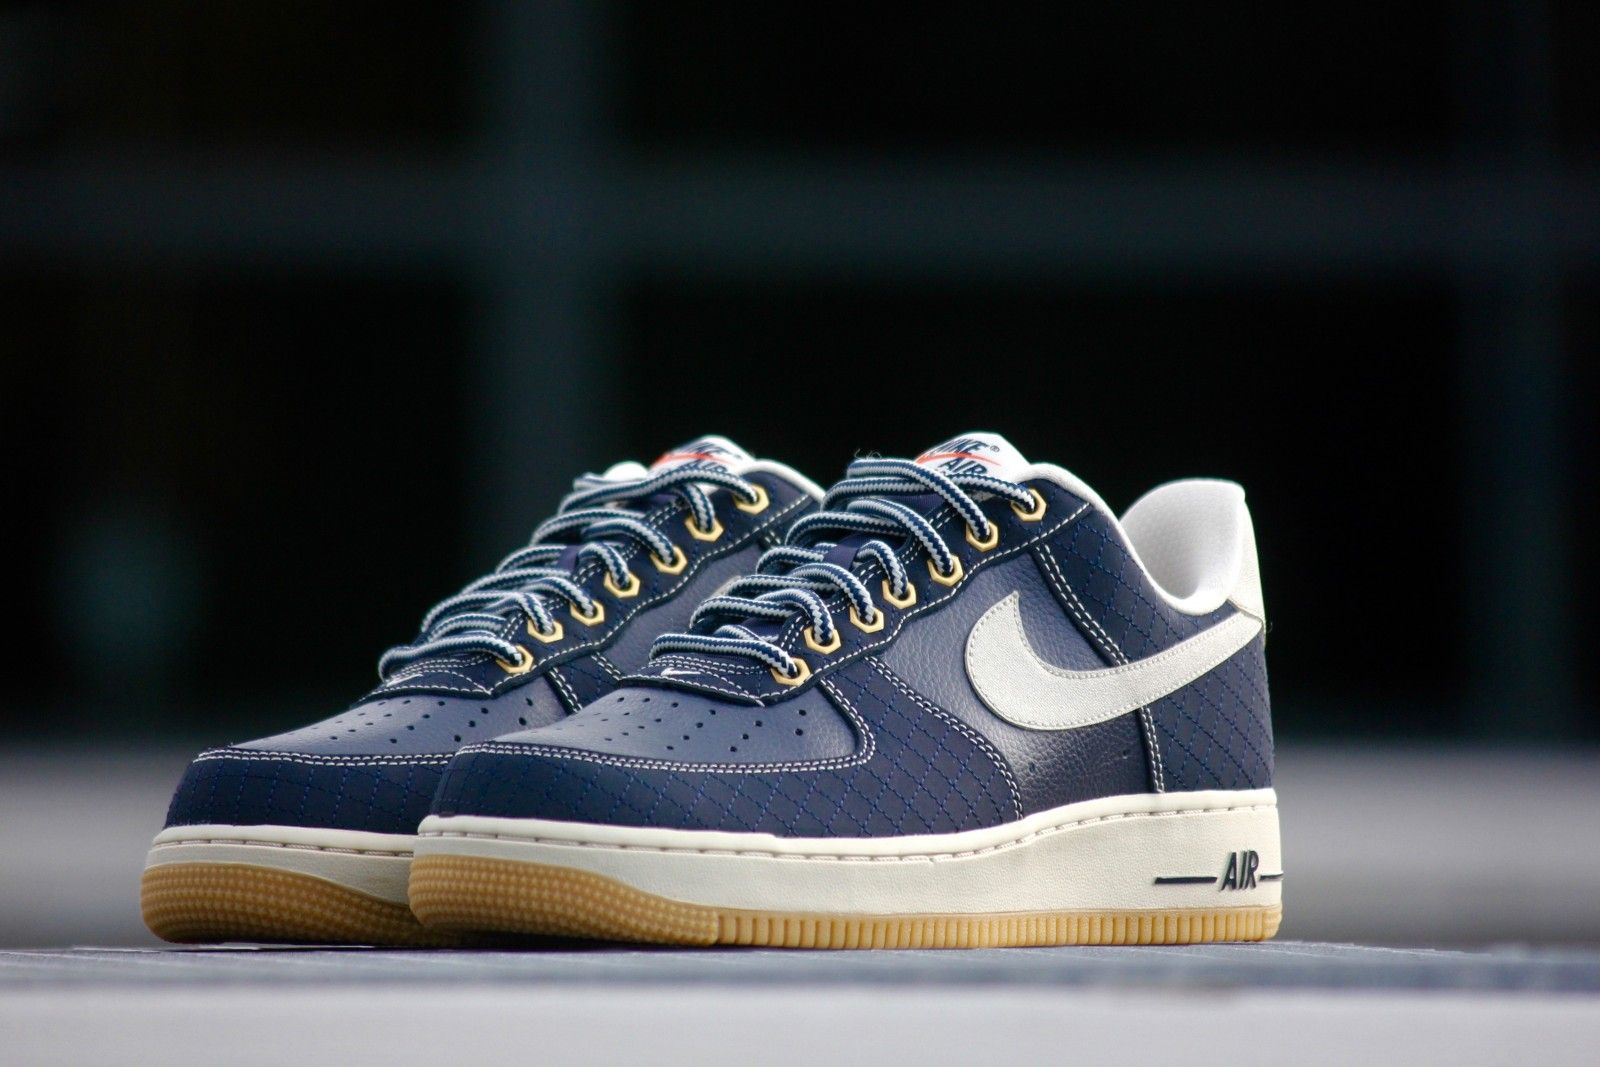 big sale 1a6e0 7a49b Nike Air Force 1 Obsidian Light Bone Gum - 488298-434